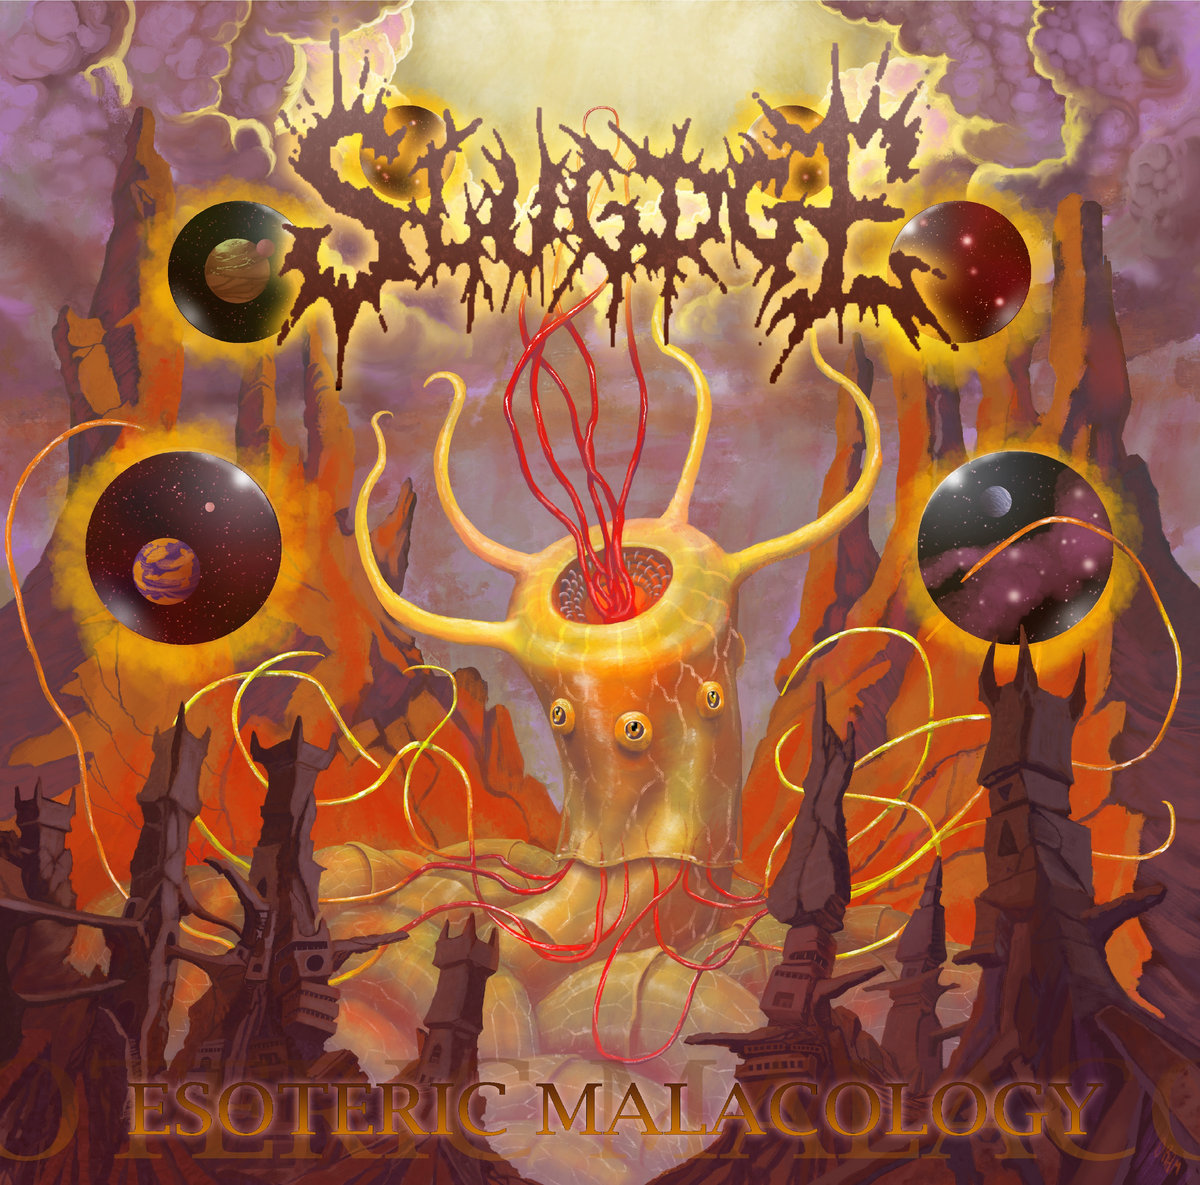 Crop Killer from Esoteric Malacology by Slugdge